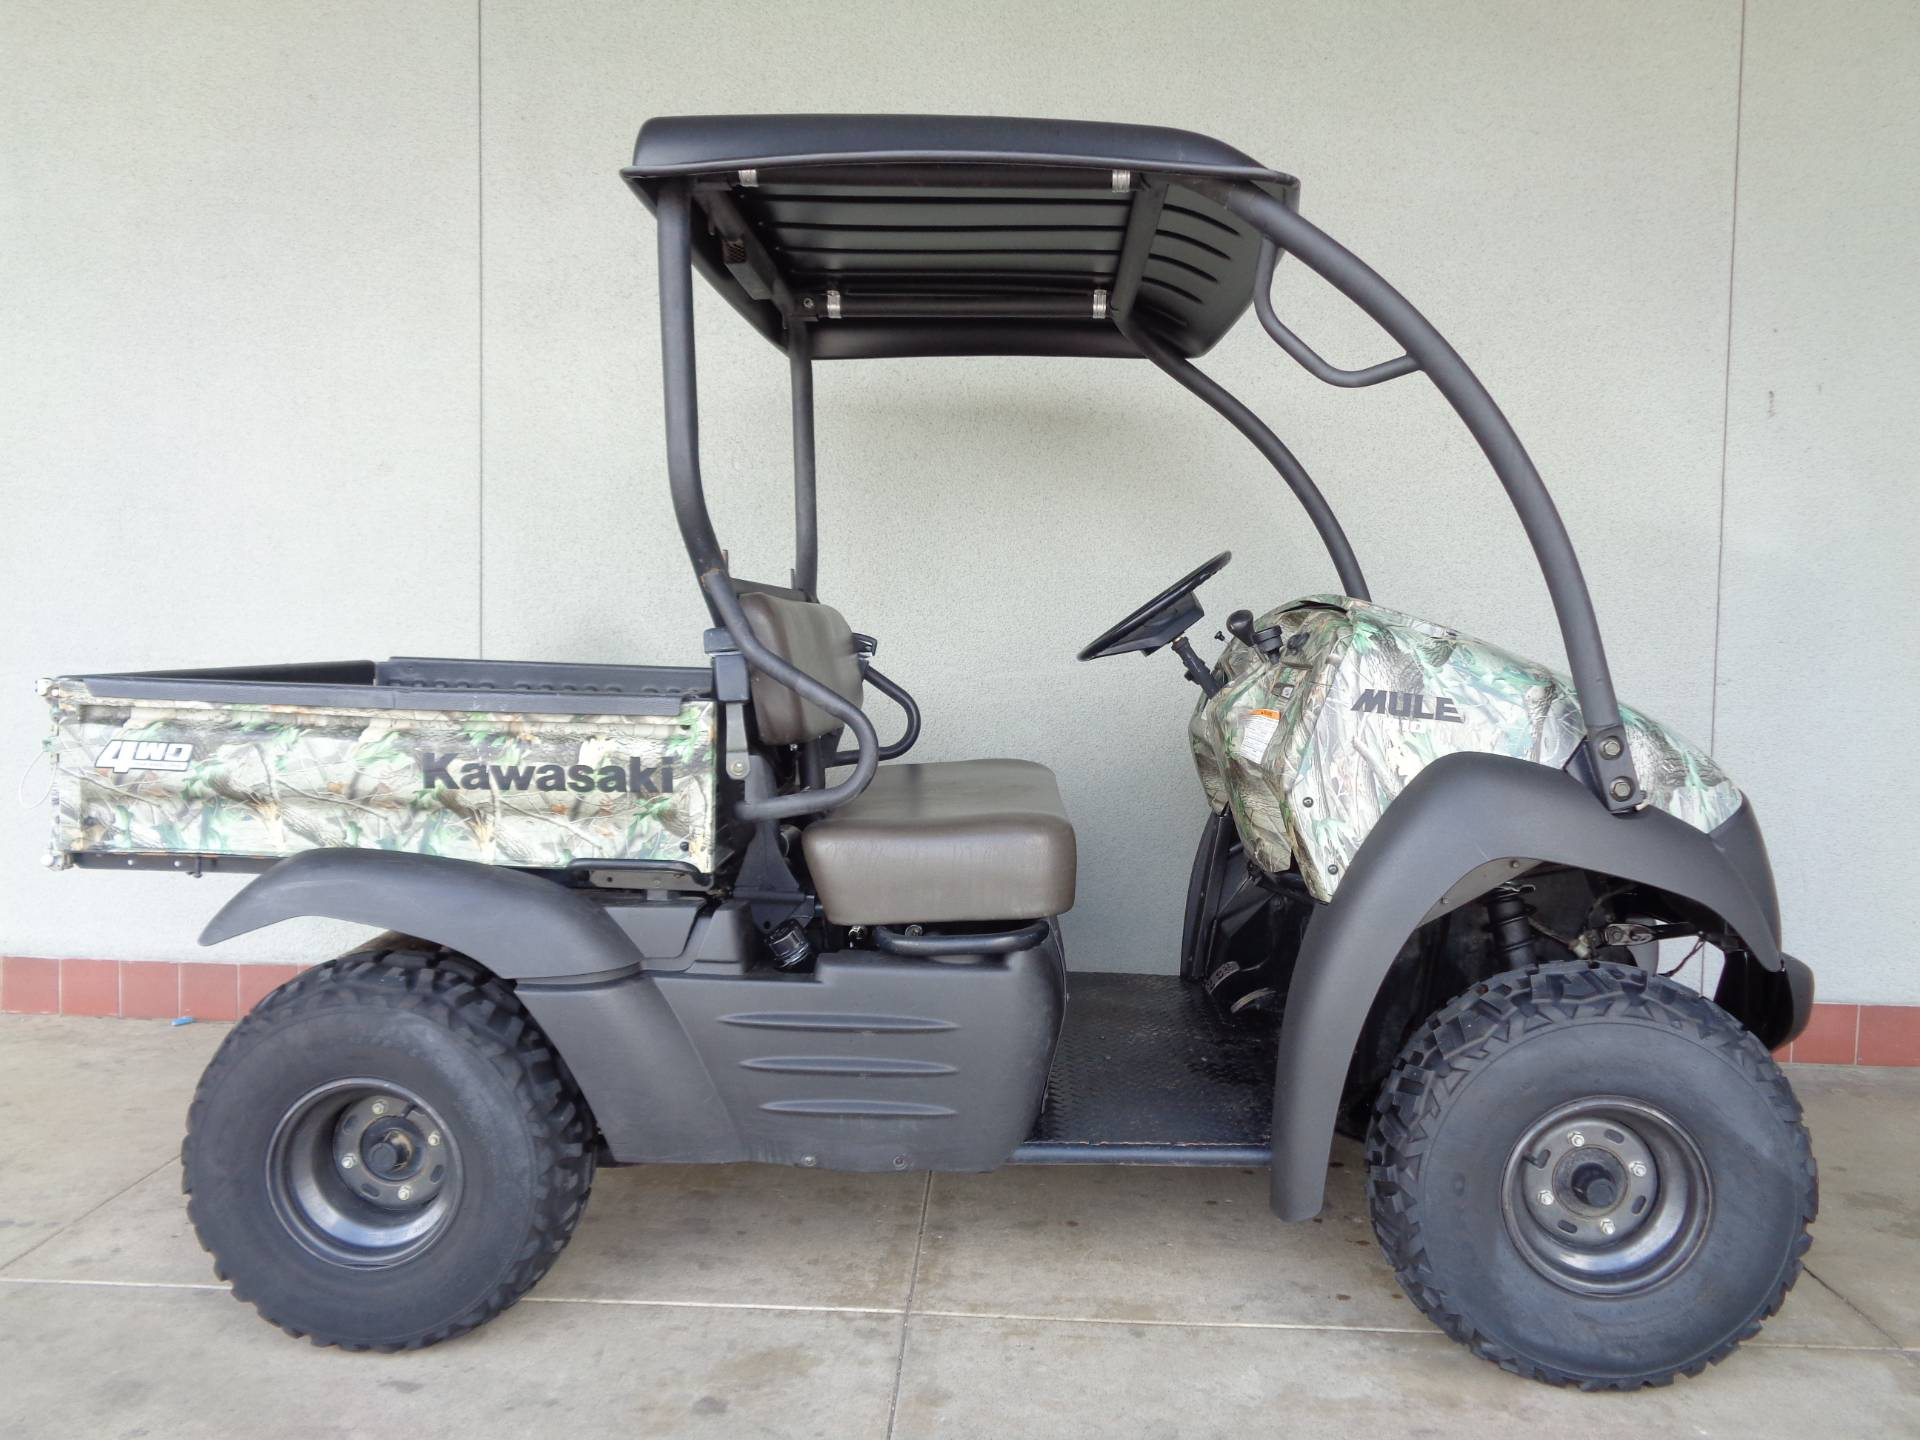 2007 Kawasaki Mule 610 4x4 for sale 196